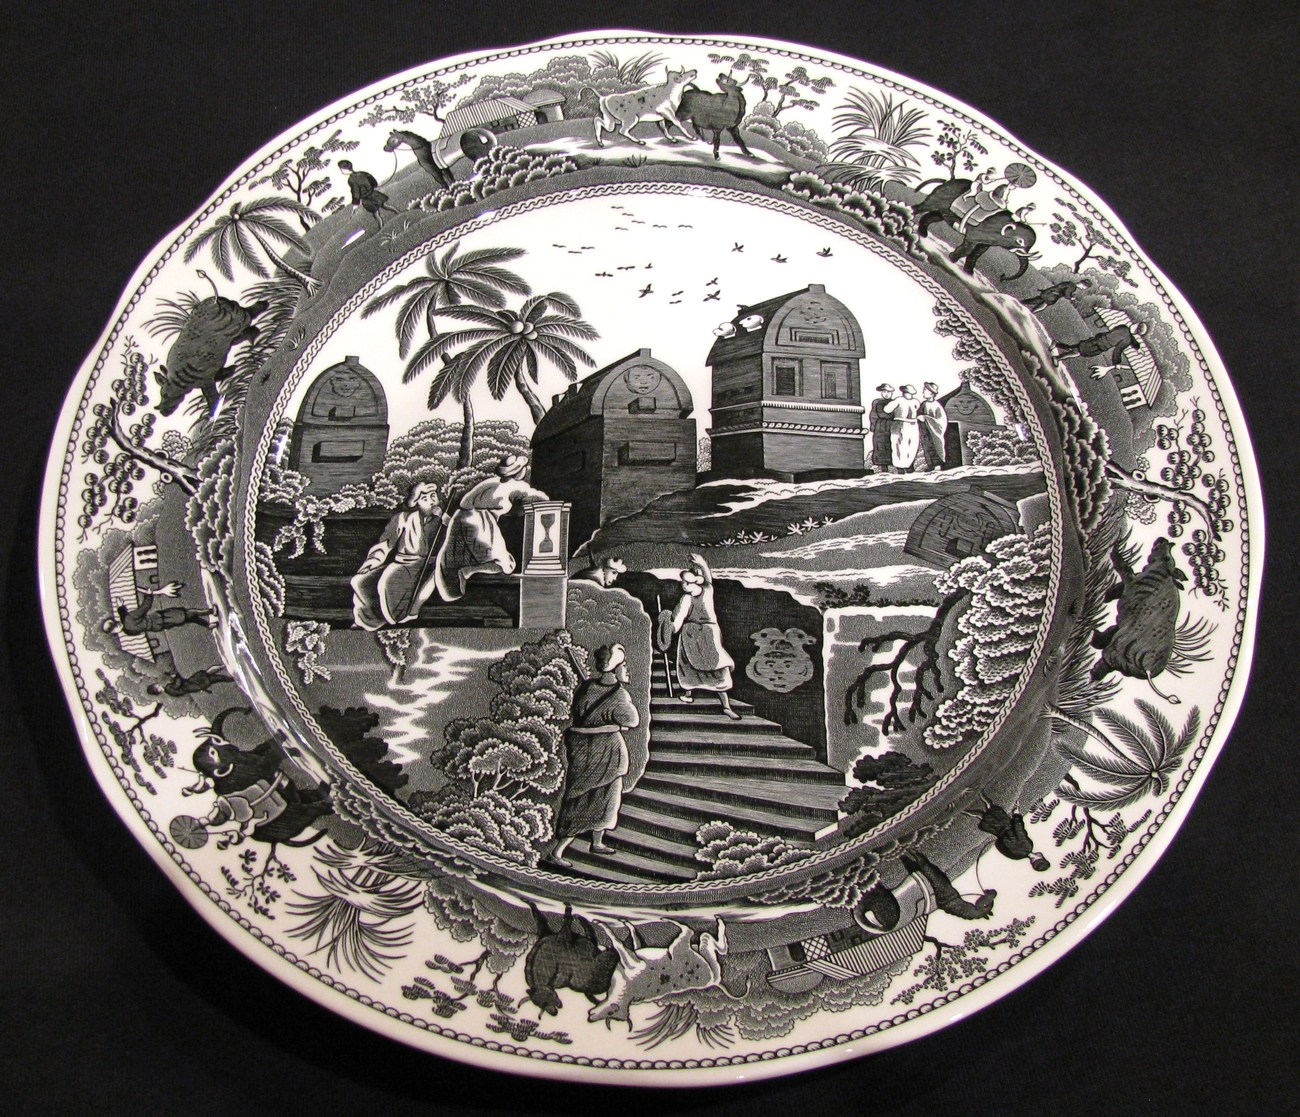 Spode Archive Collection Plate Caramanian Traditions Series Black and White